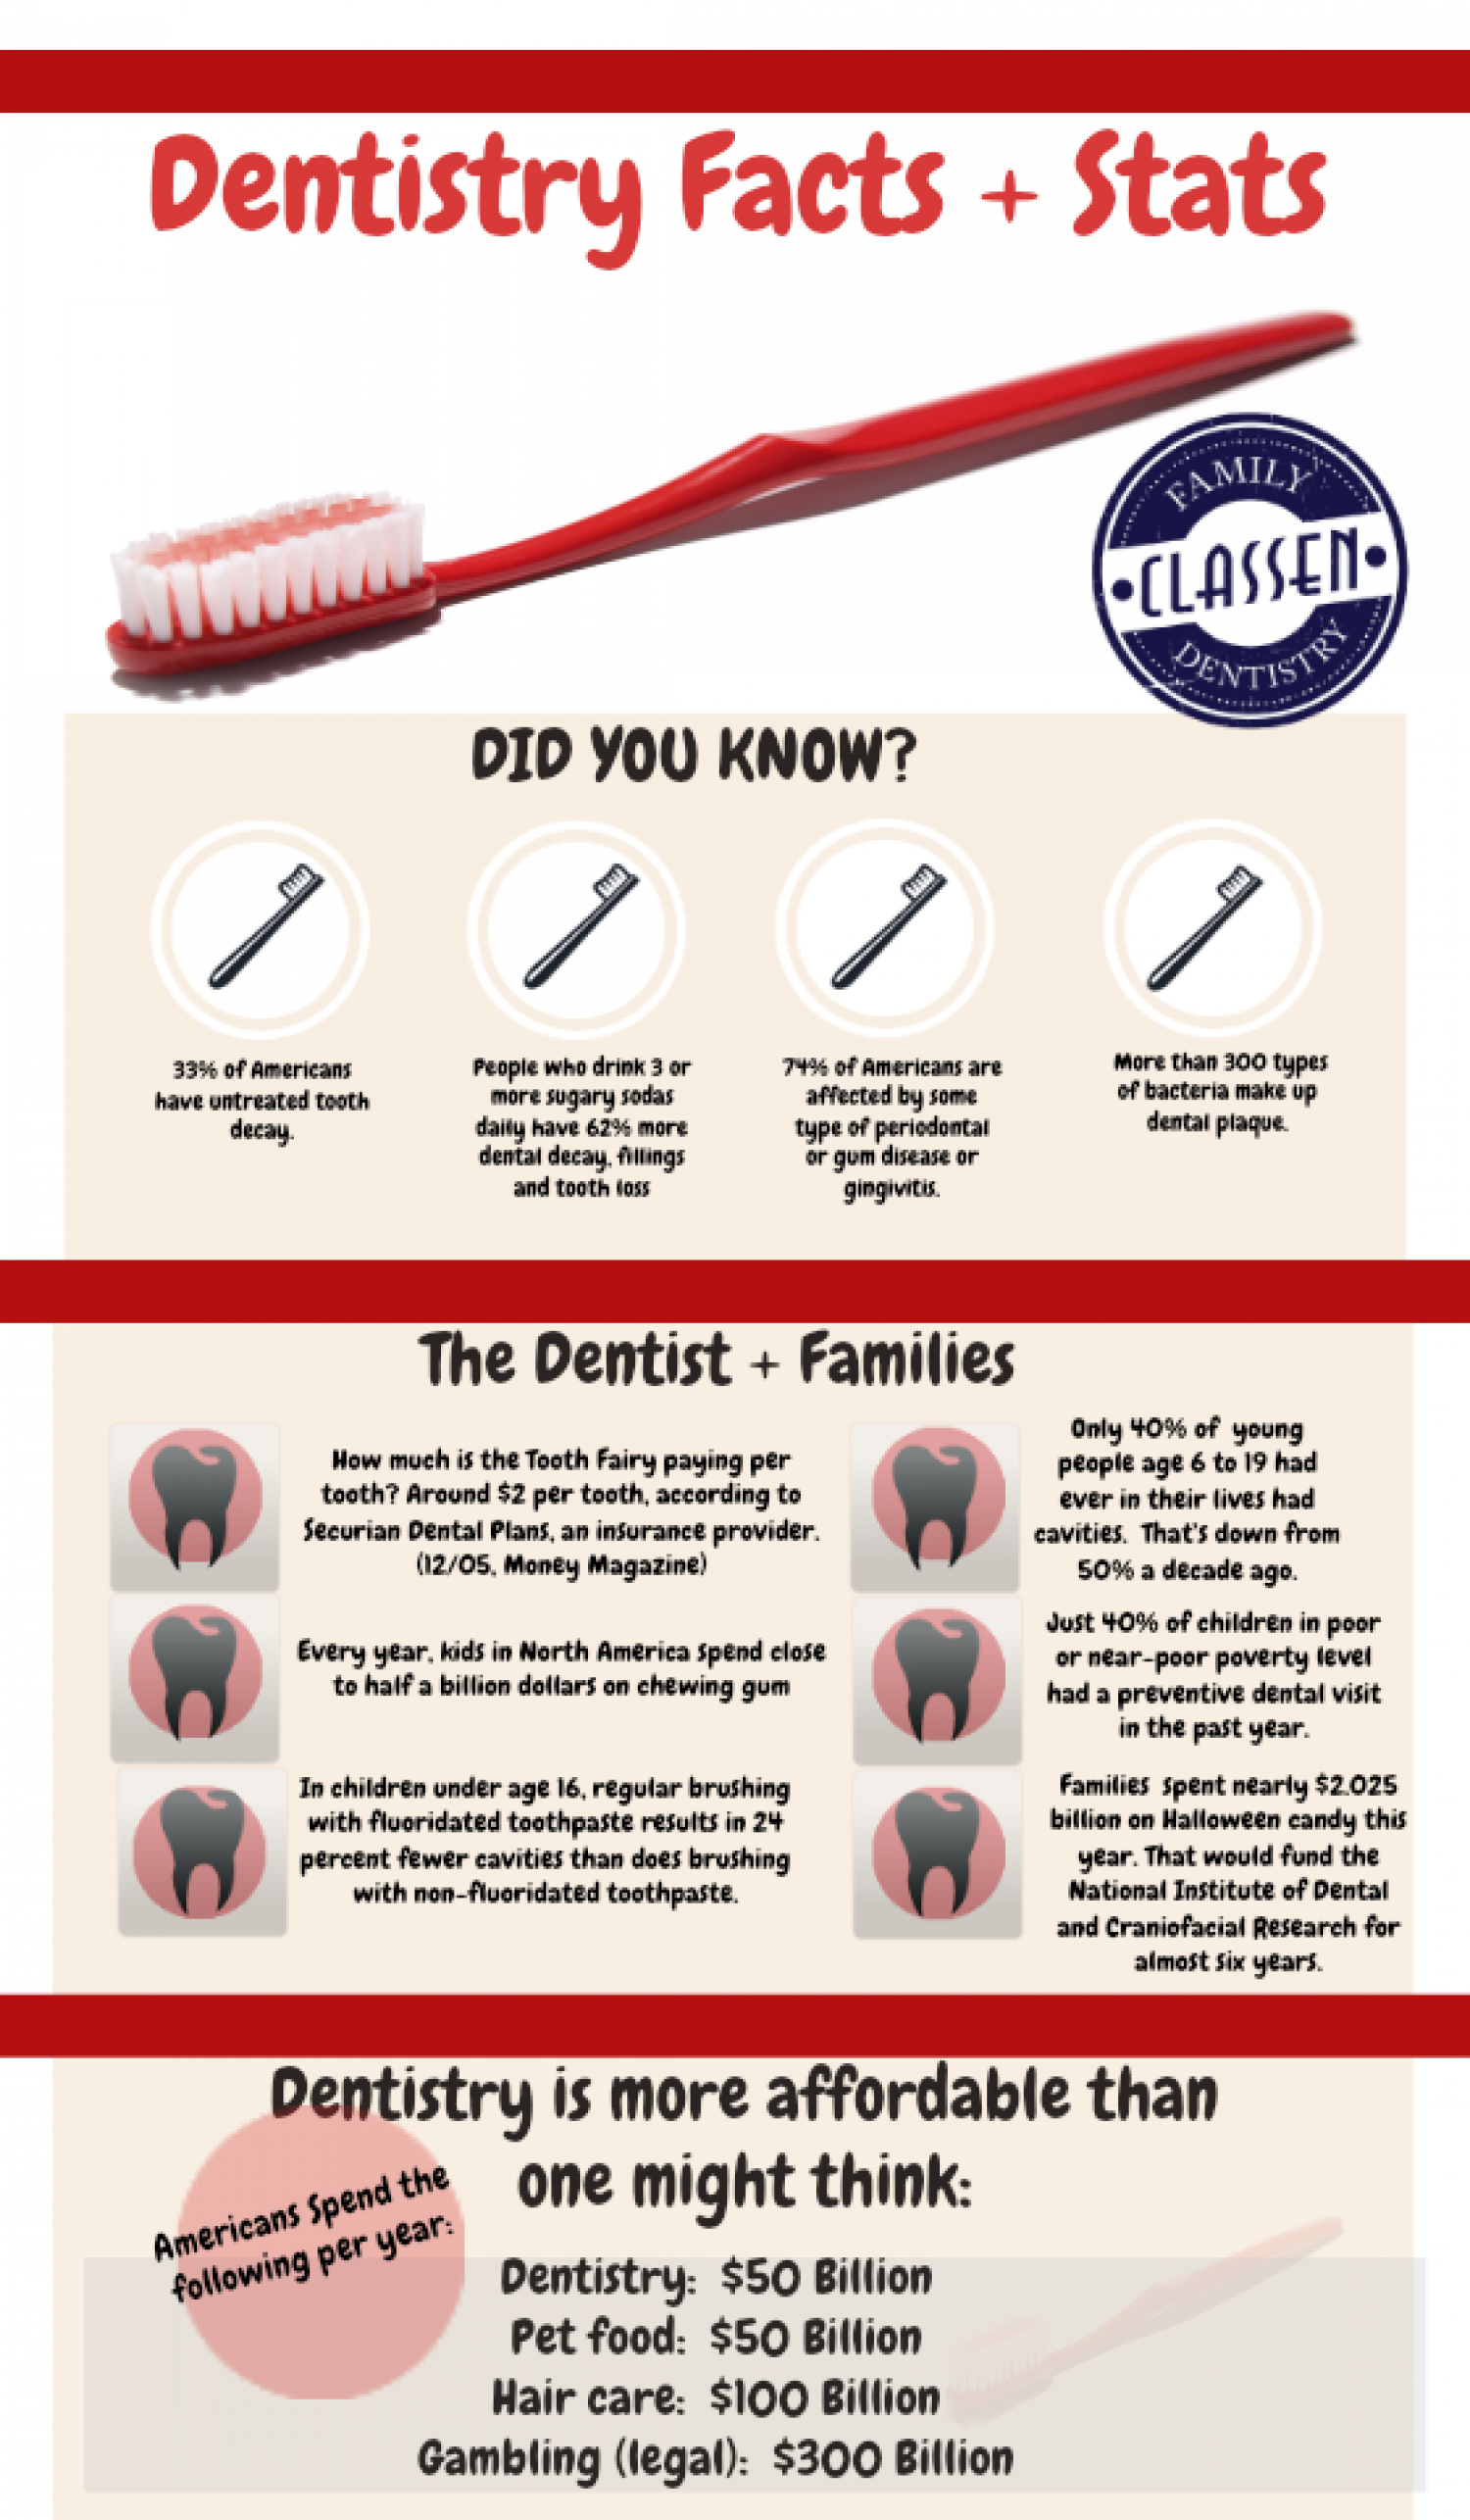 Classen Family Dentistry Infographic